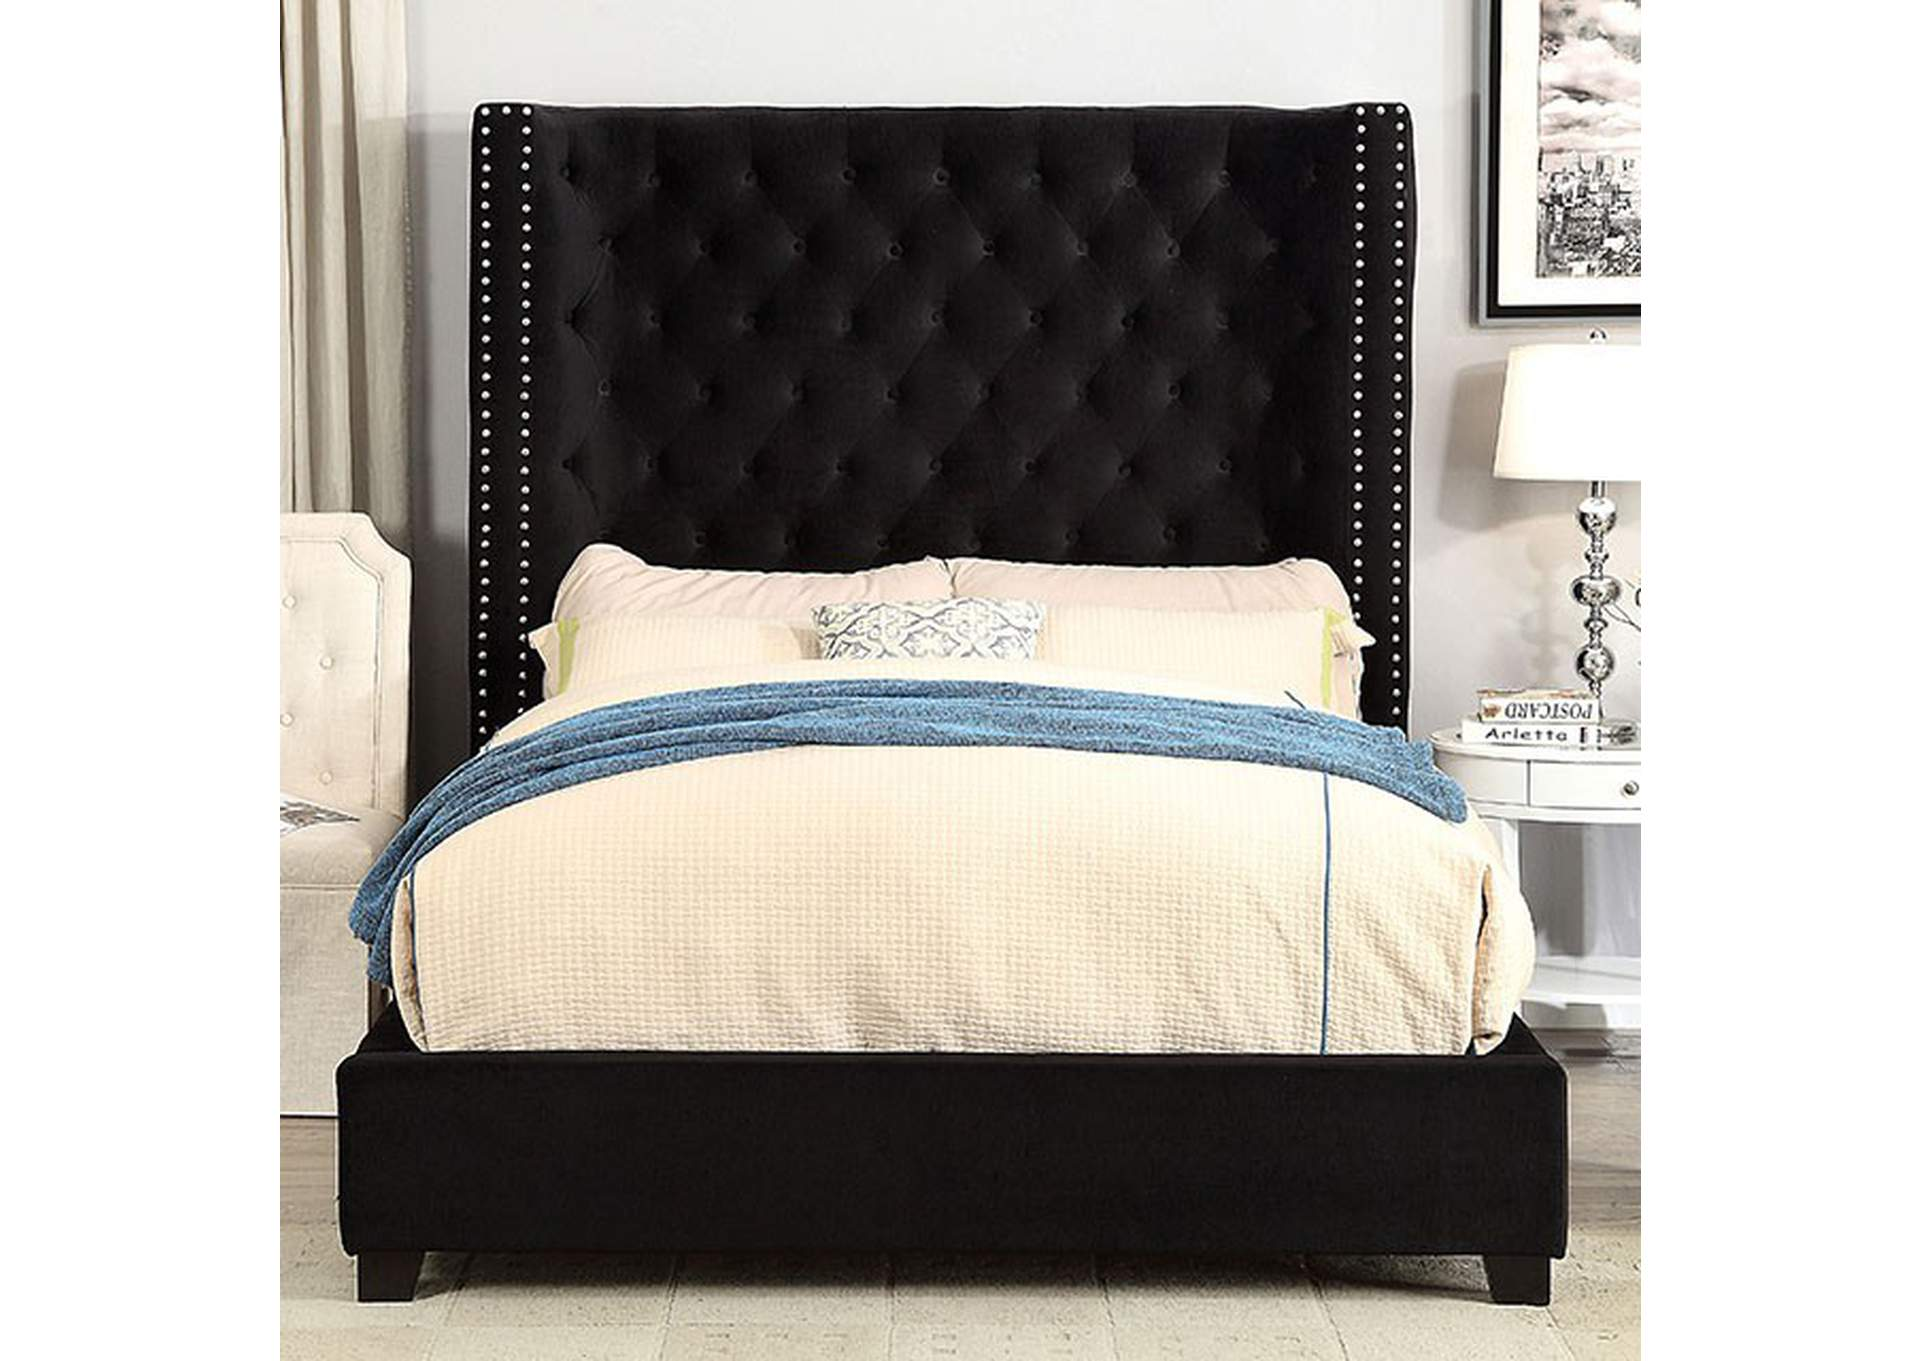 Mirabelle Black Upholstered Eastern Bed,Furniture of America